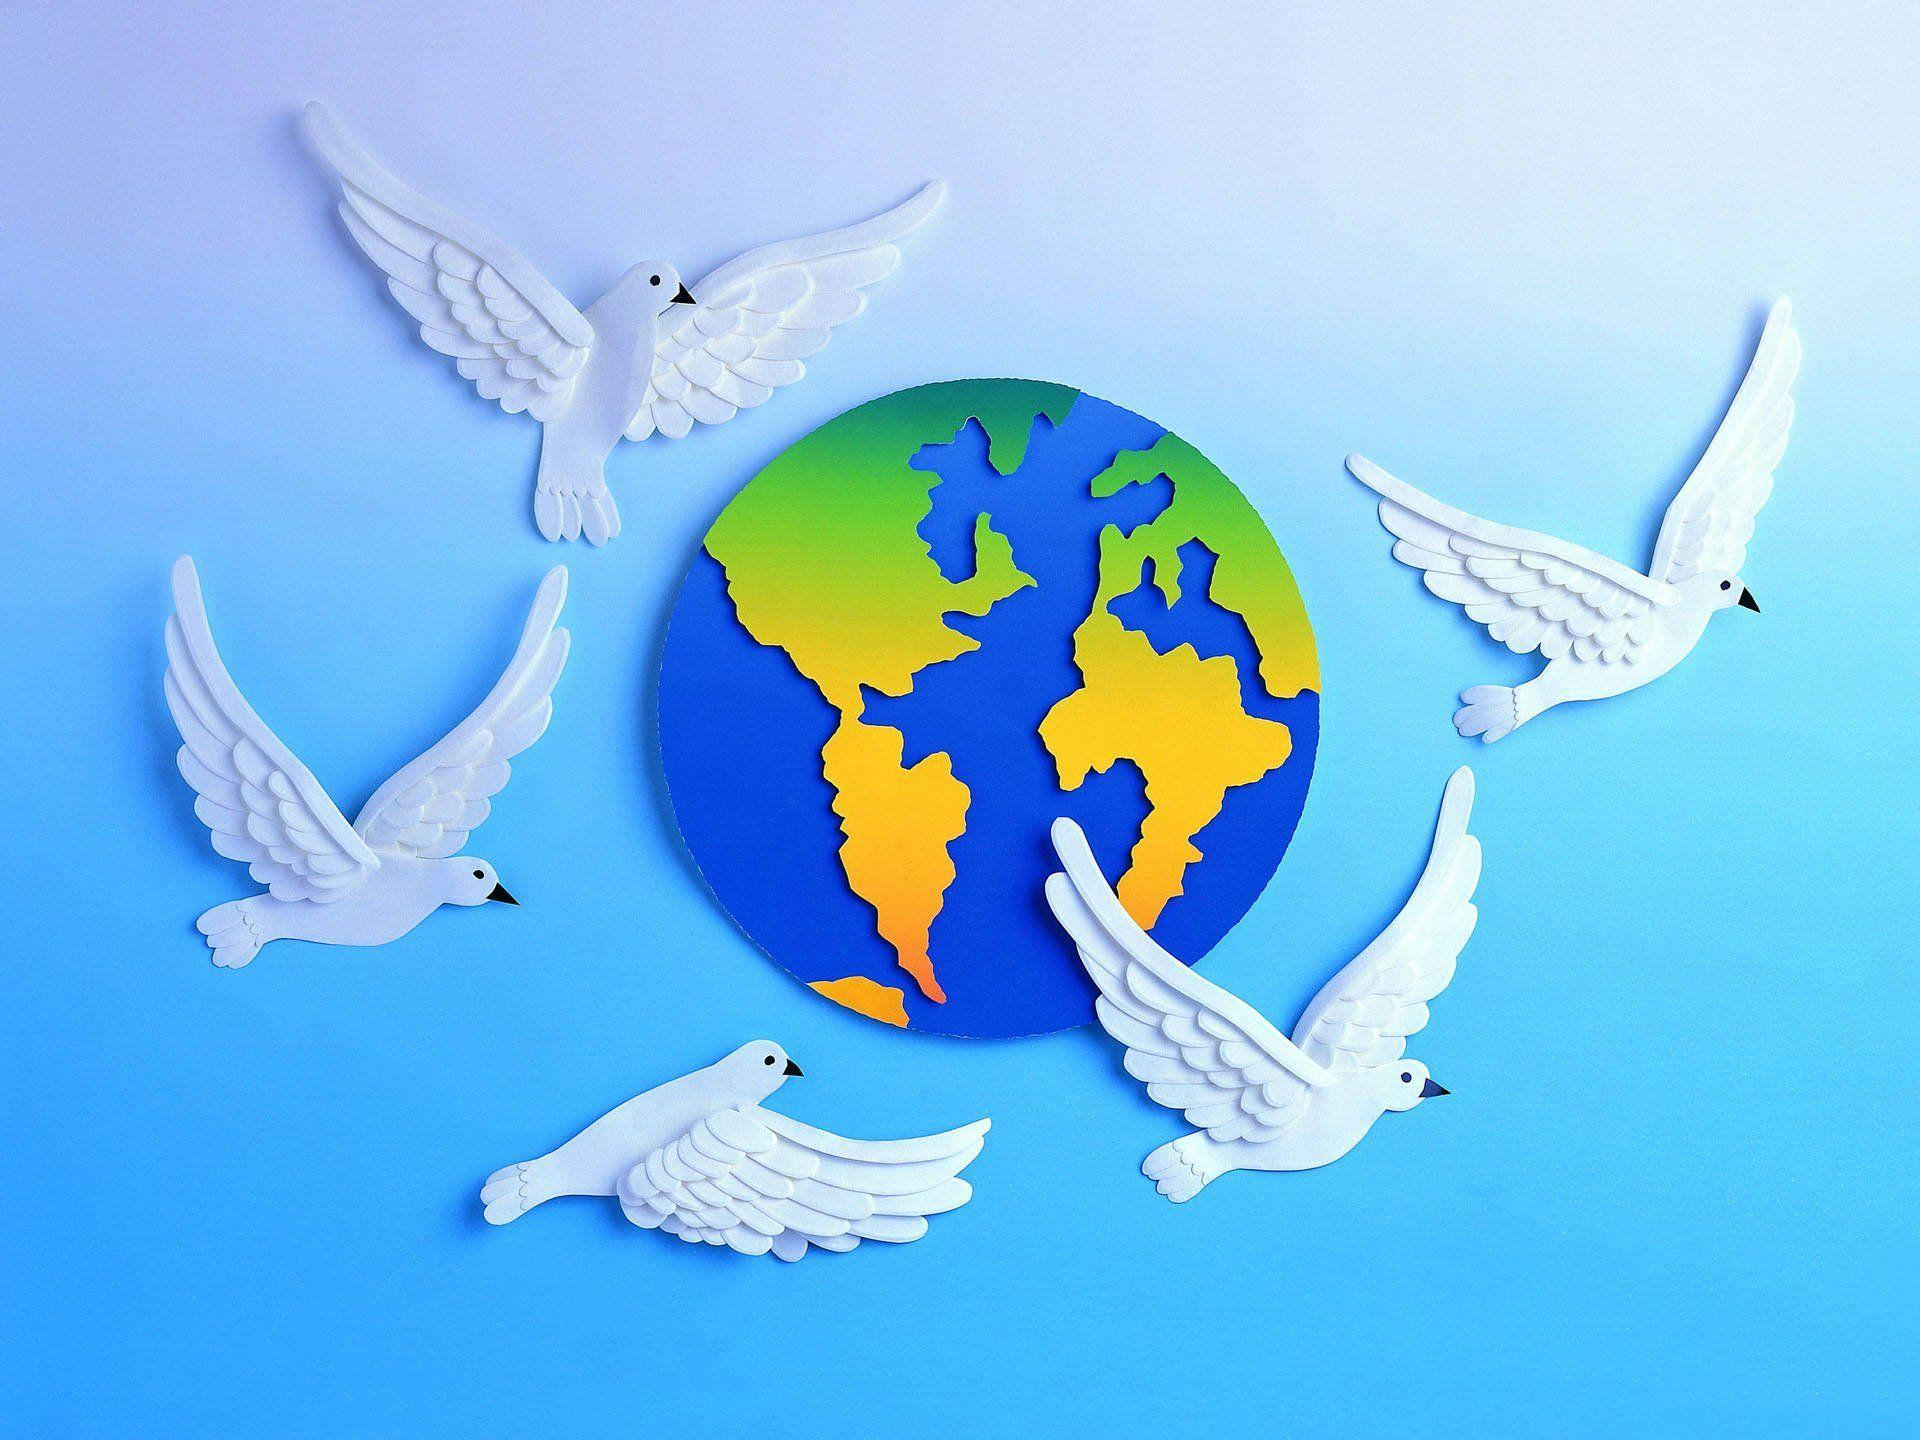 World Peace Wallpapers Hd